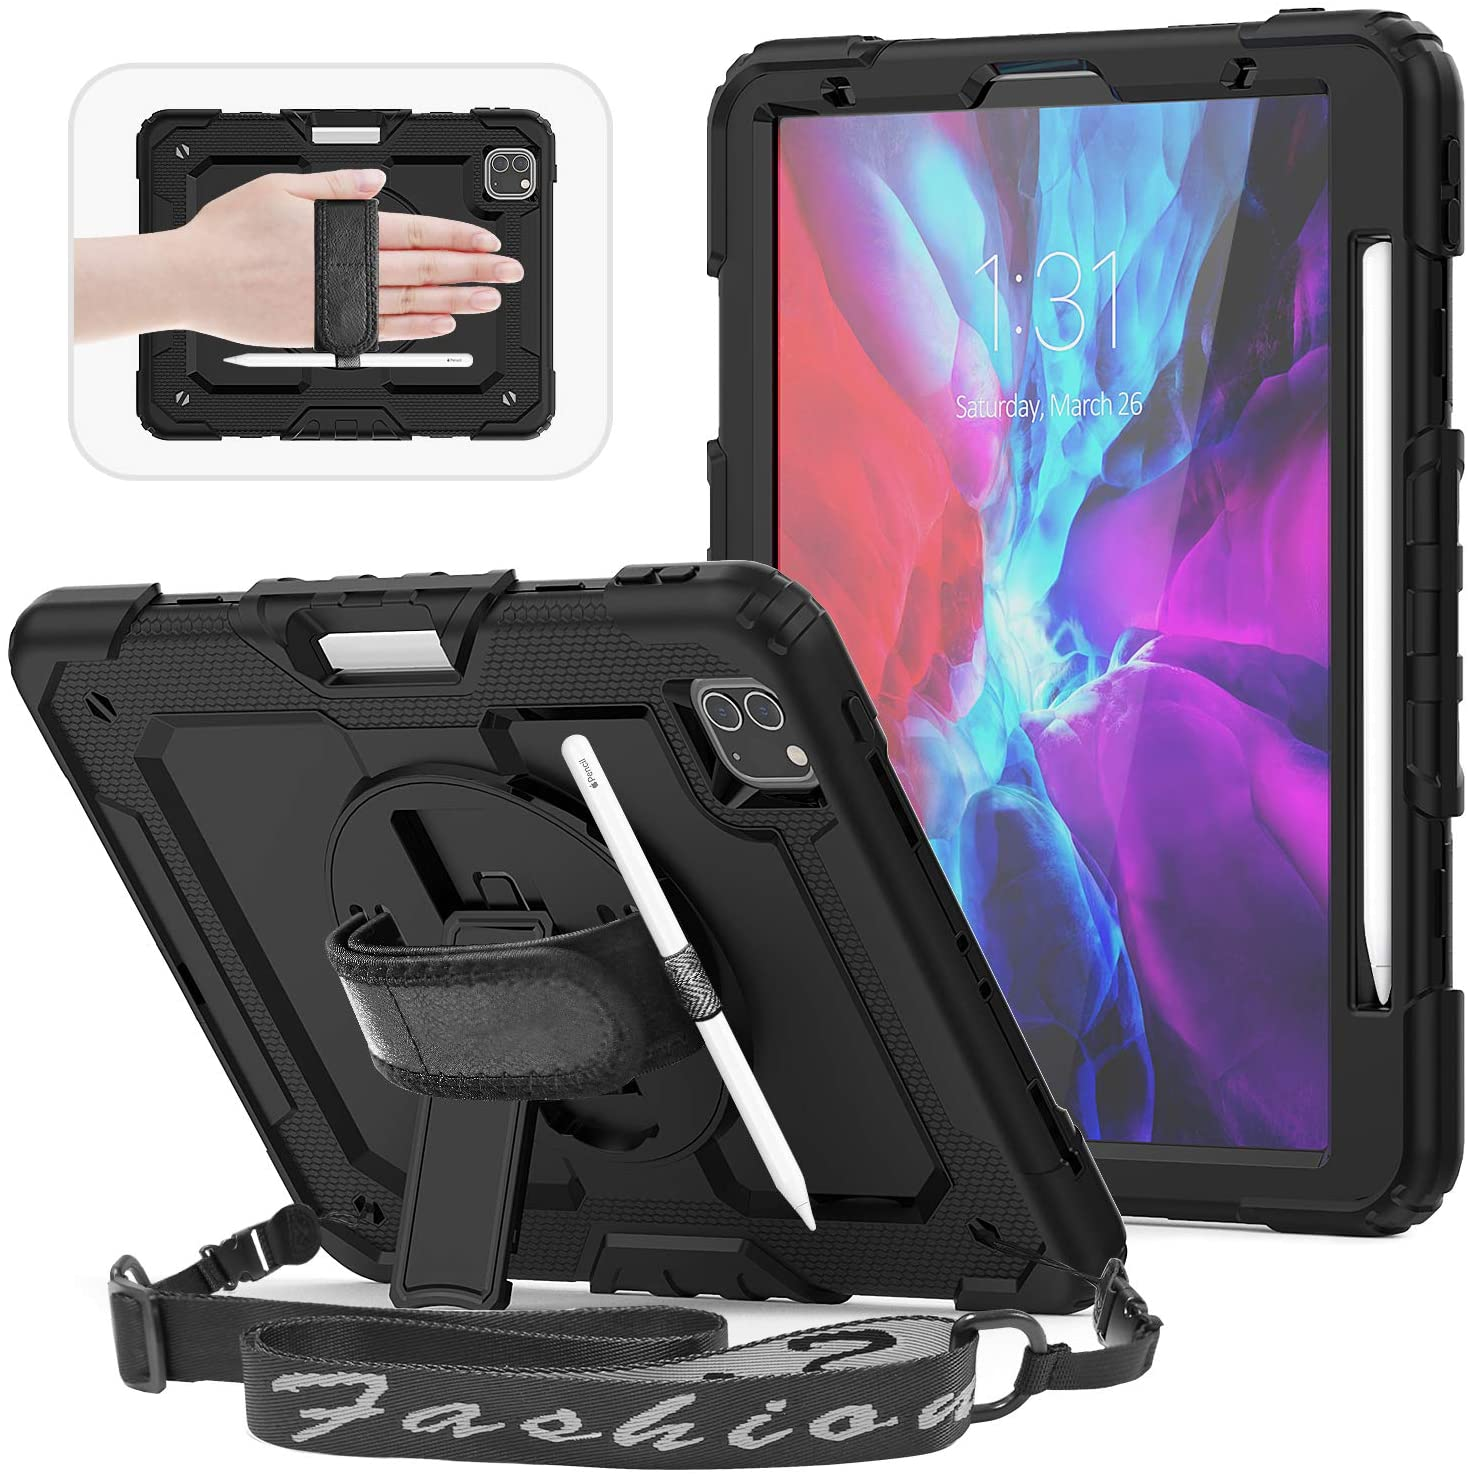 HXCASEAC for New iPad Pro 11 2020 Case, Support iPad 2nd Pencil Charging, with [Screen Protector] & [Shoulder Strap] & [ Rotating Hand Strap], Full Body Shockproof Rugged Case with Pencil Holder,Black